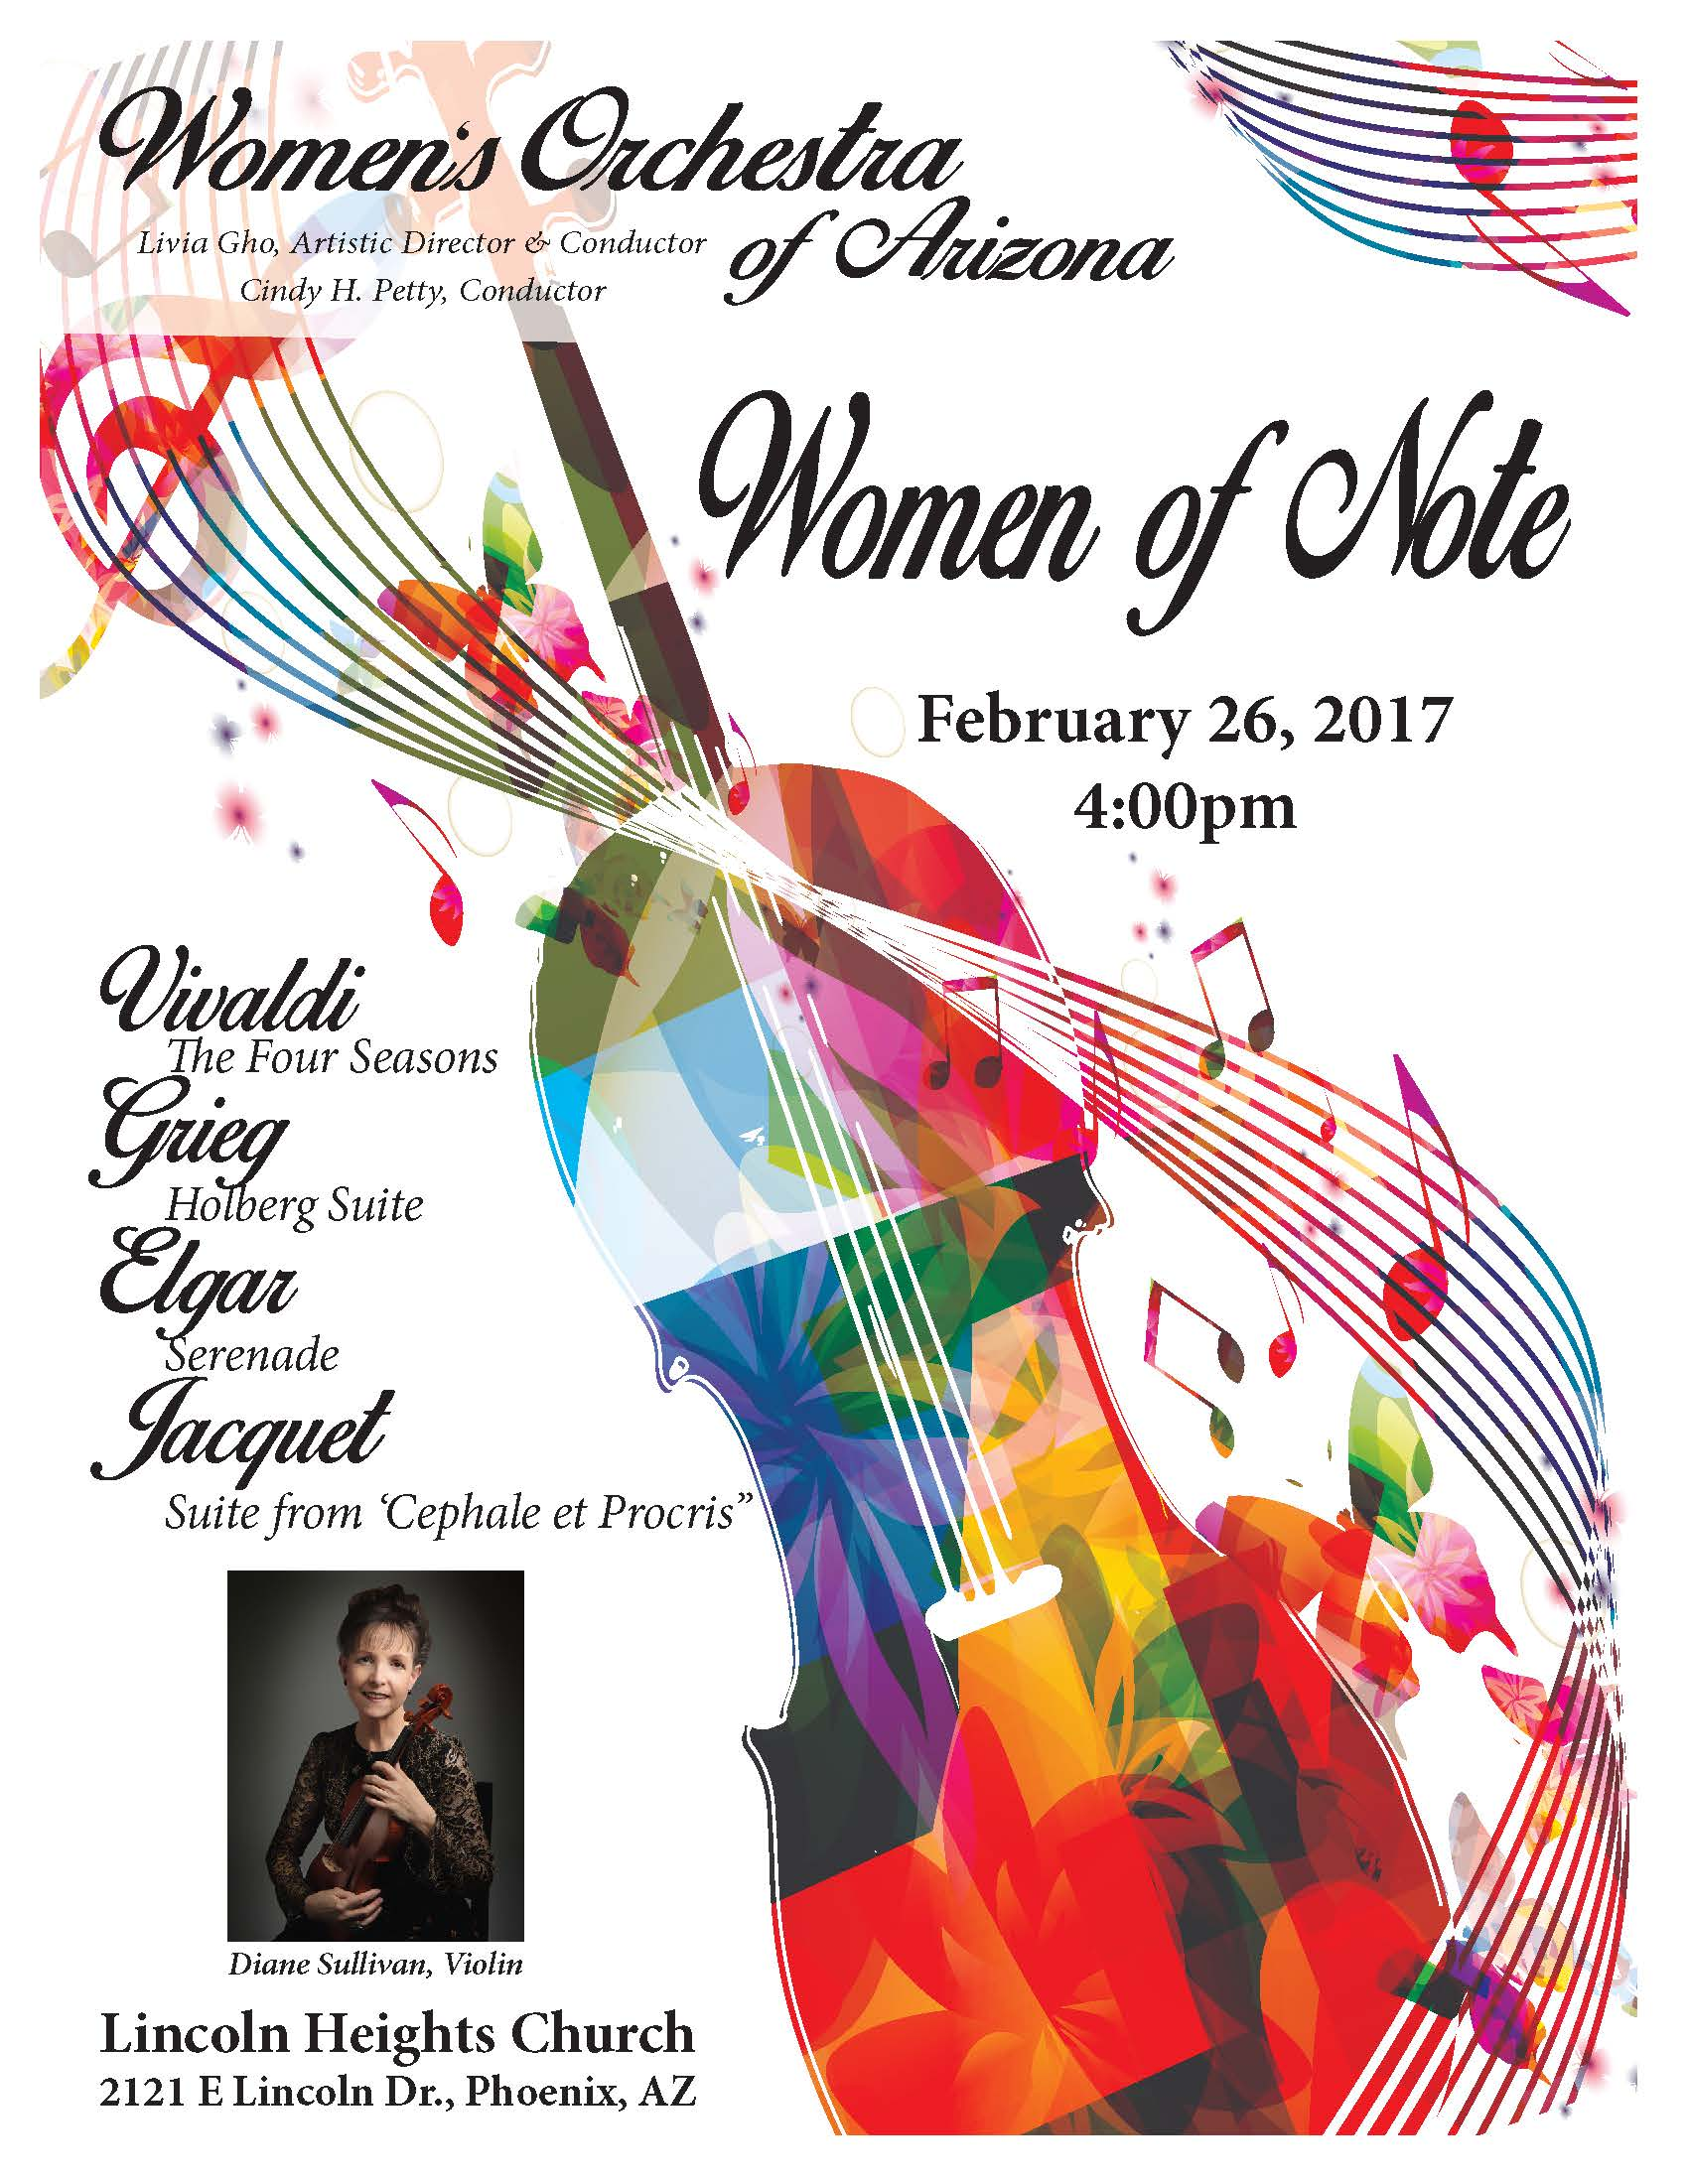 Concert: Women of Note, February 26, 2017